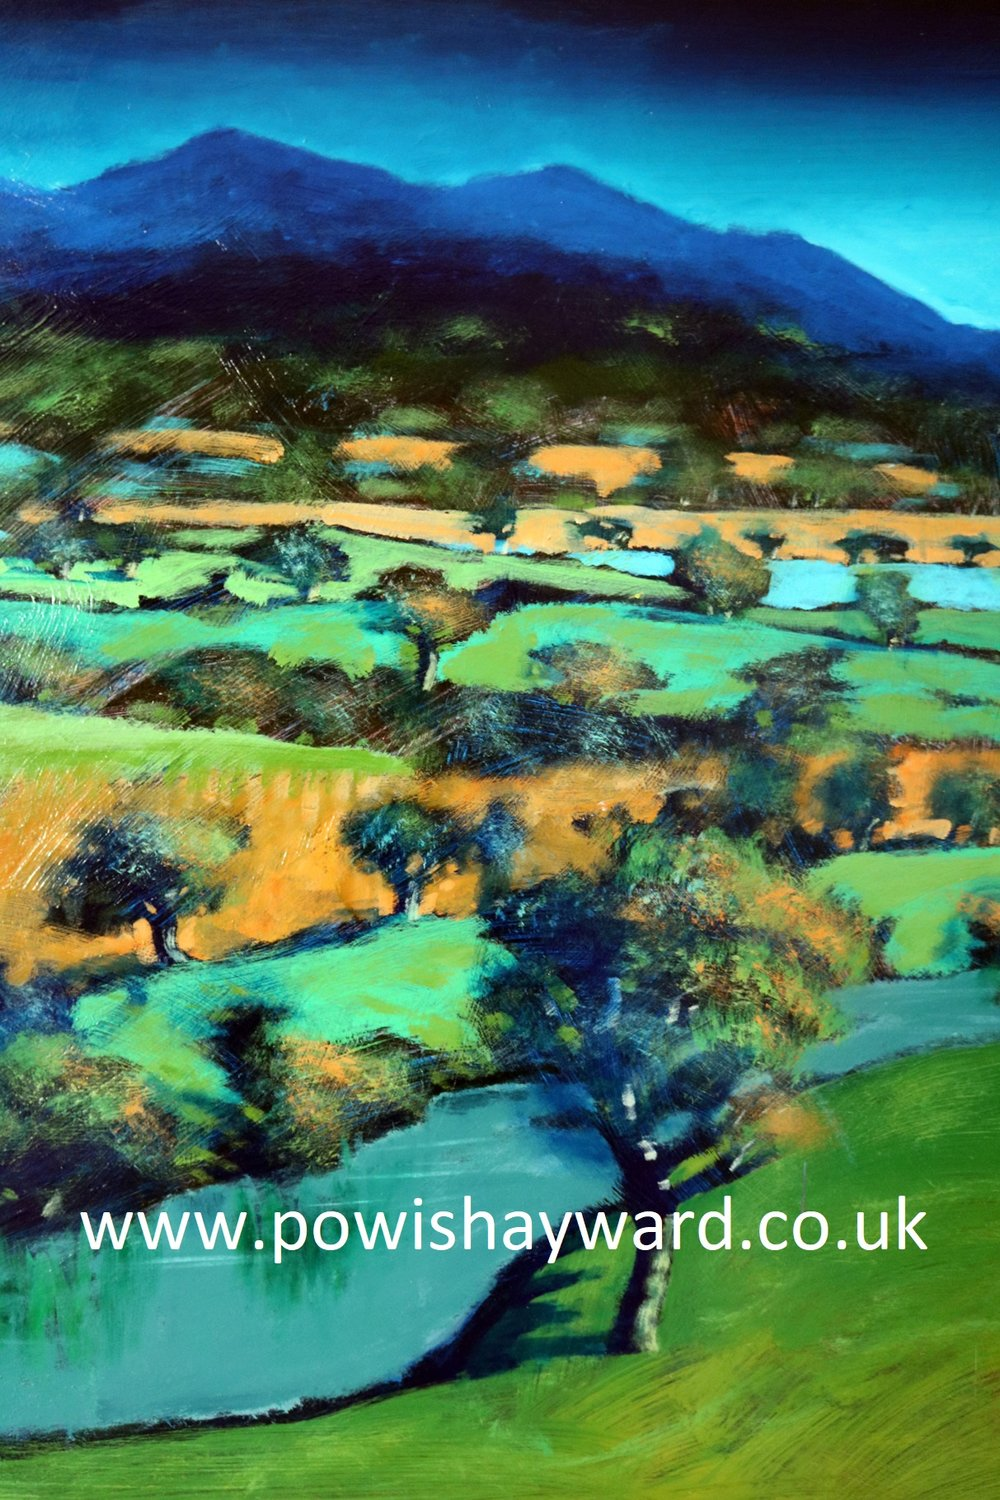 malverns detail 139x97 £3000.jpg